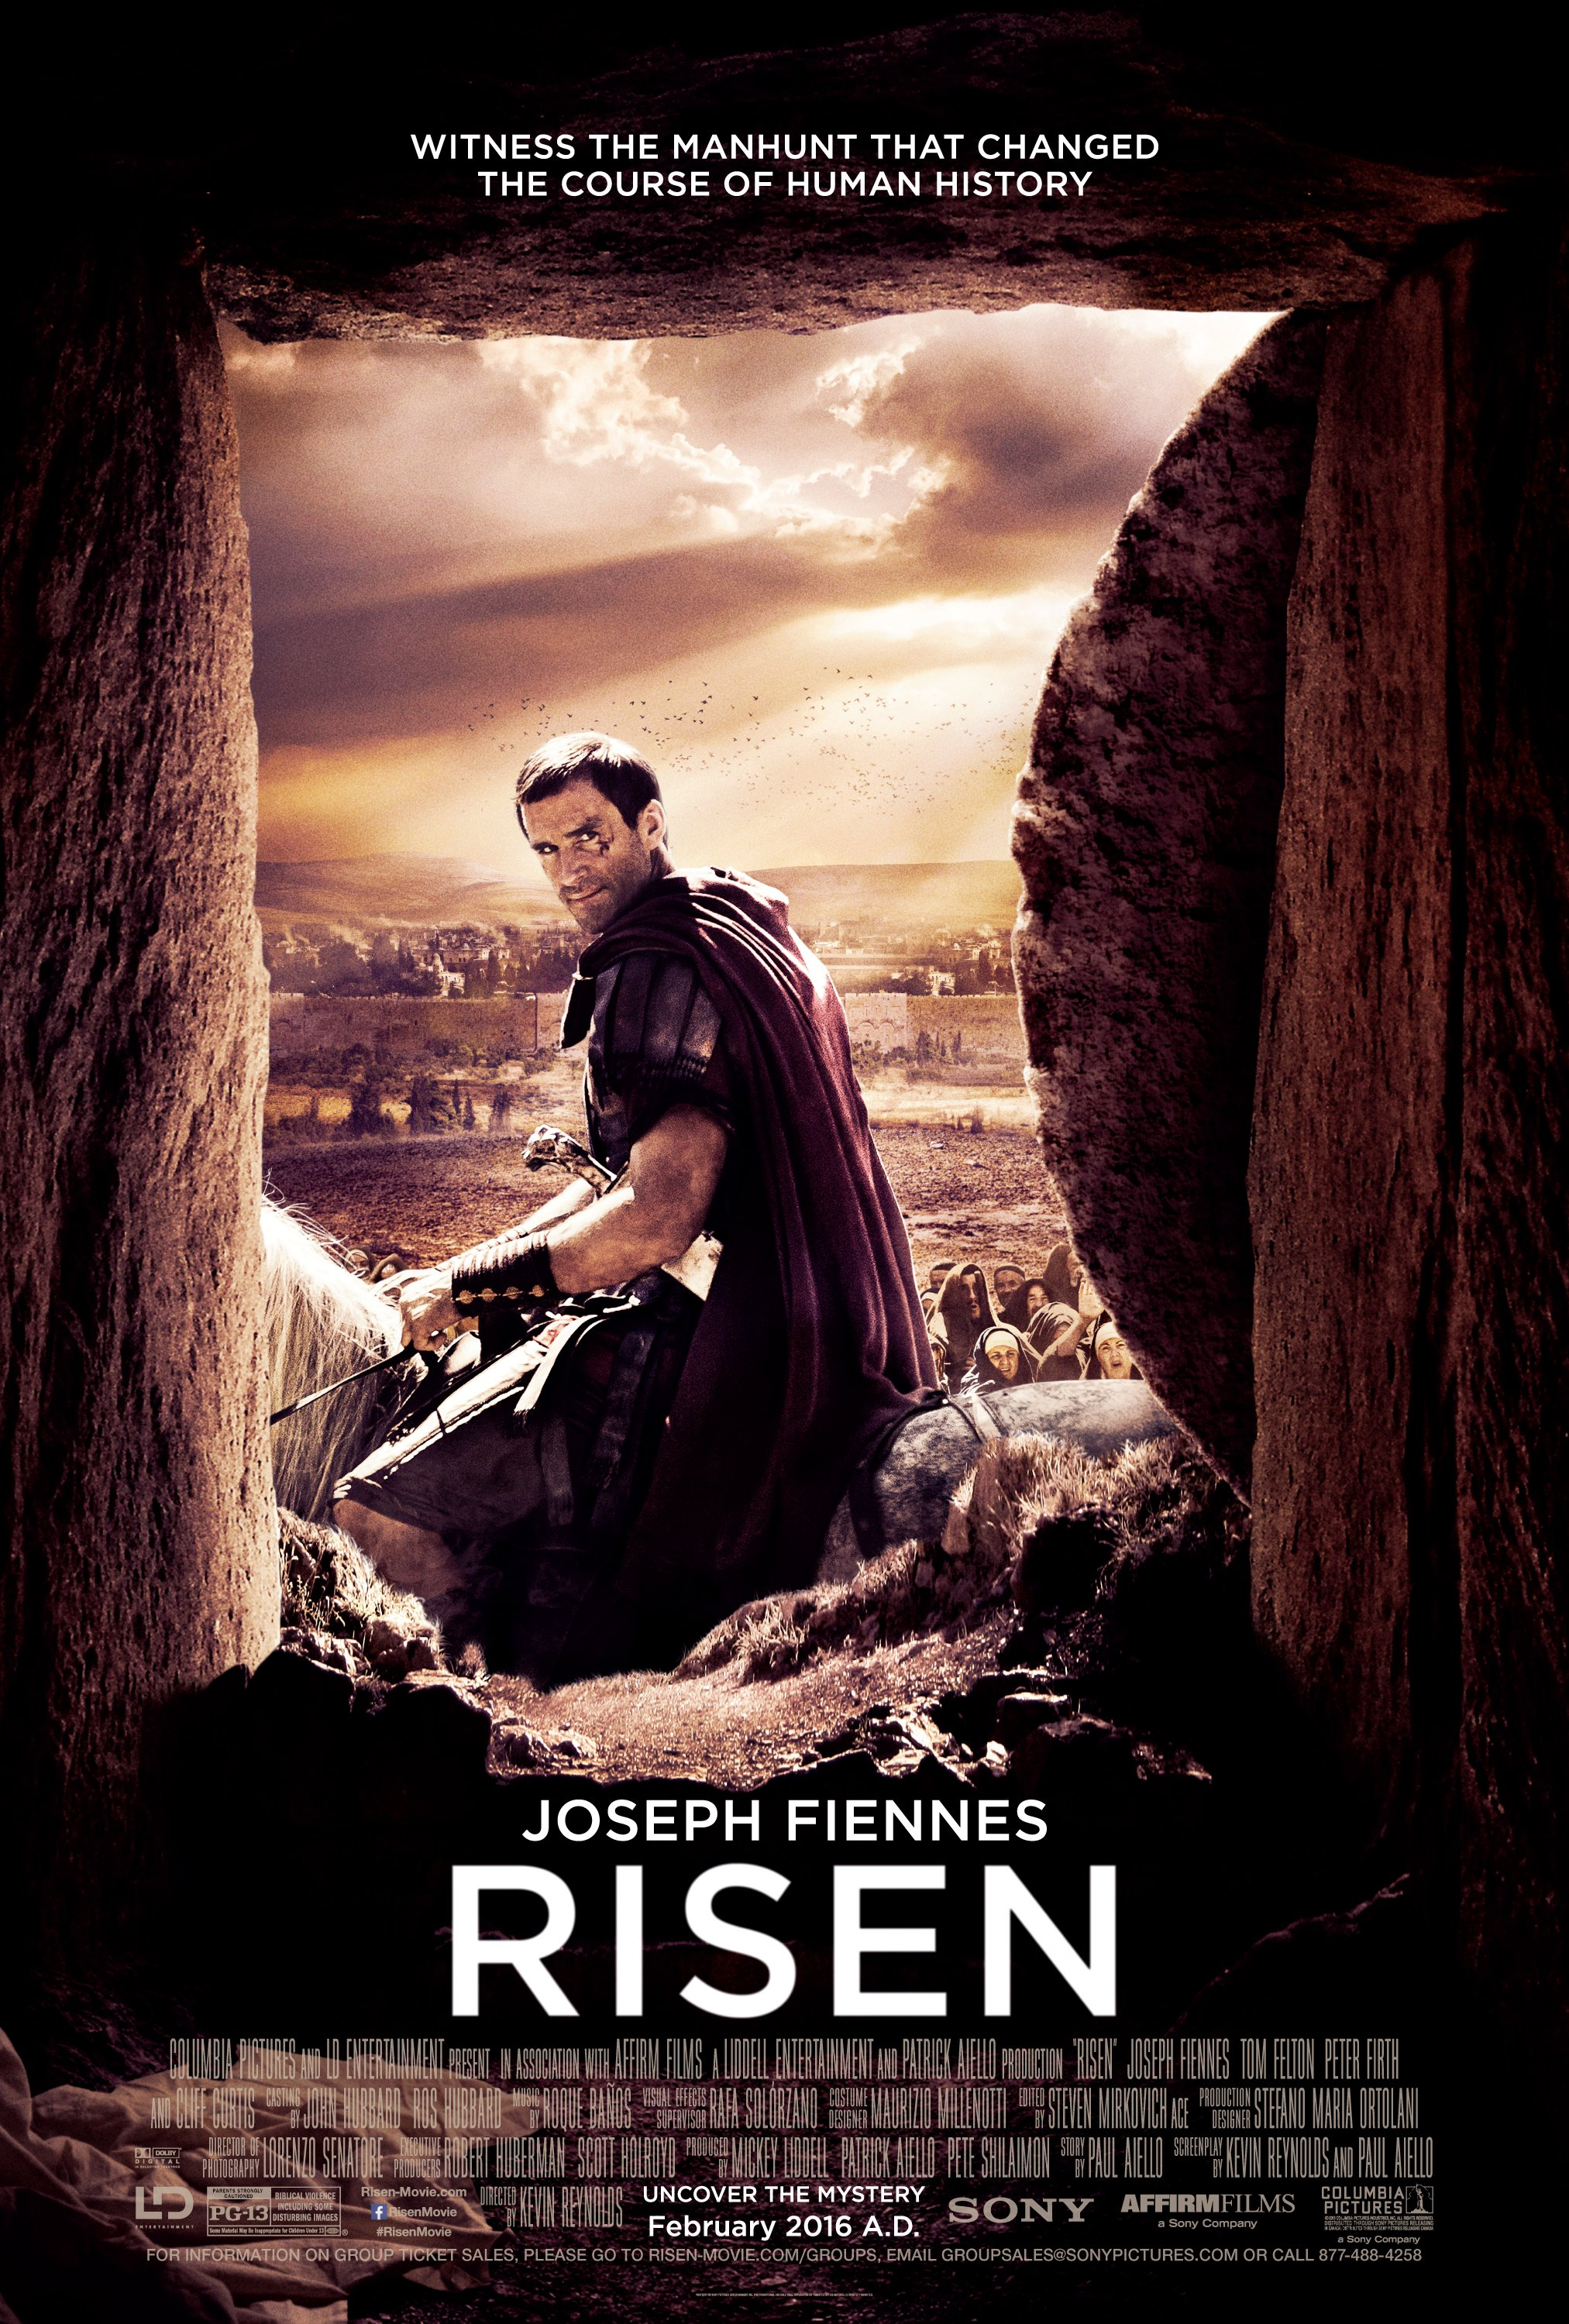 Risen (2016) - Directed by: Kevin ReynoldsStarring: Joseph Fiennes, Tom Felton, Peter FirthRated: PG-13 for Biblical Violence Including Some Disturbing ImagesTMM: 3 Stars out of 5Strengths: Production Value, Joseph FiennesWeaknesses: Disjointed Story, Stephen Hagan